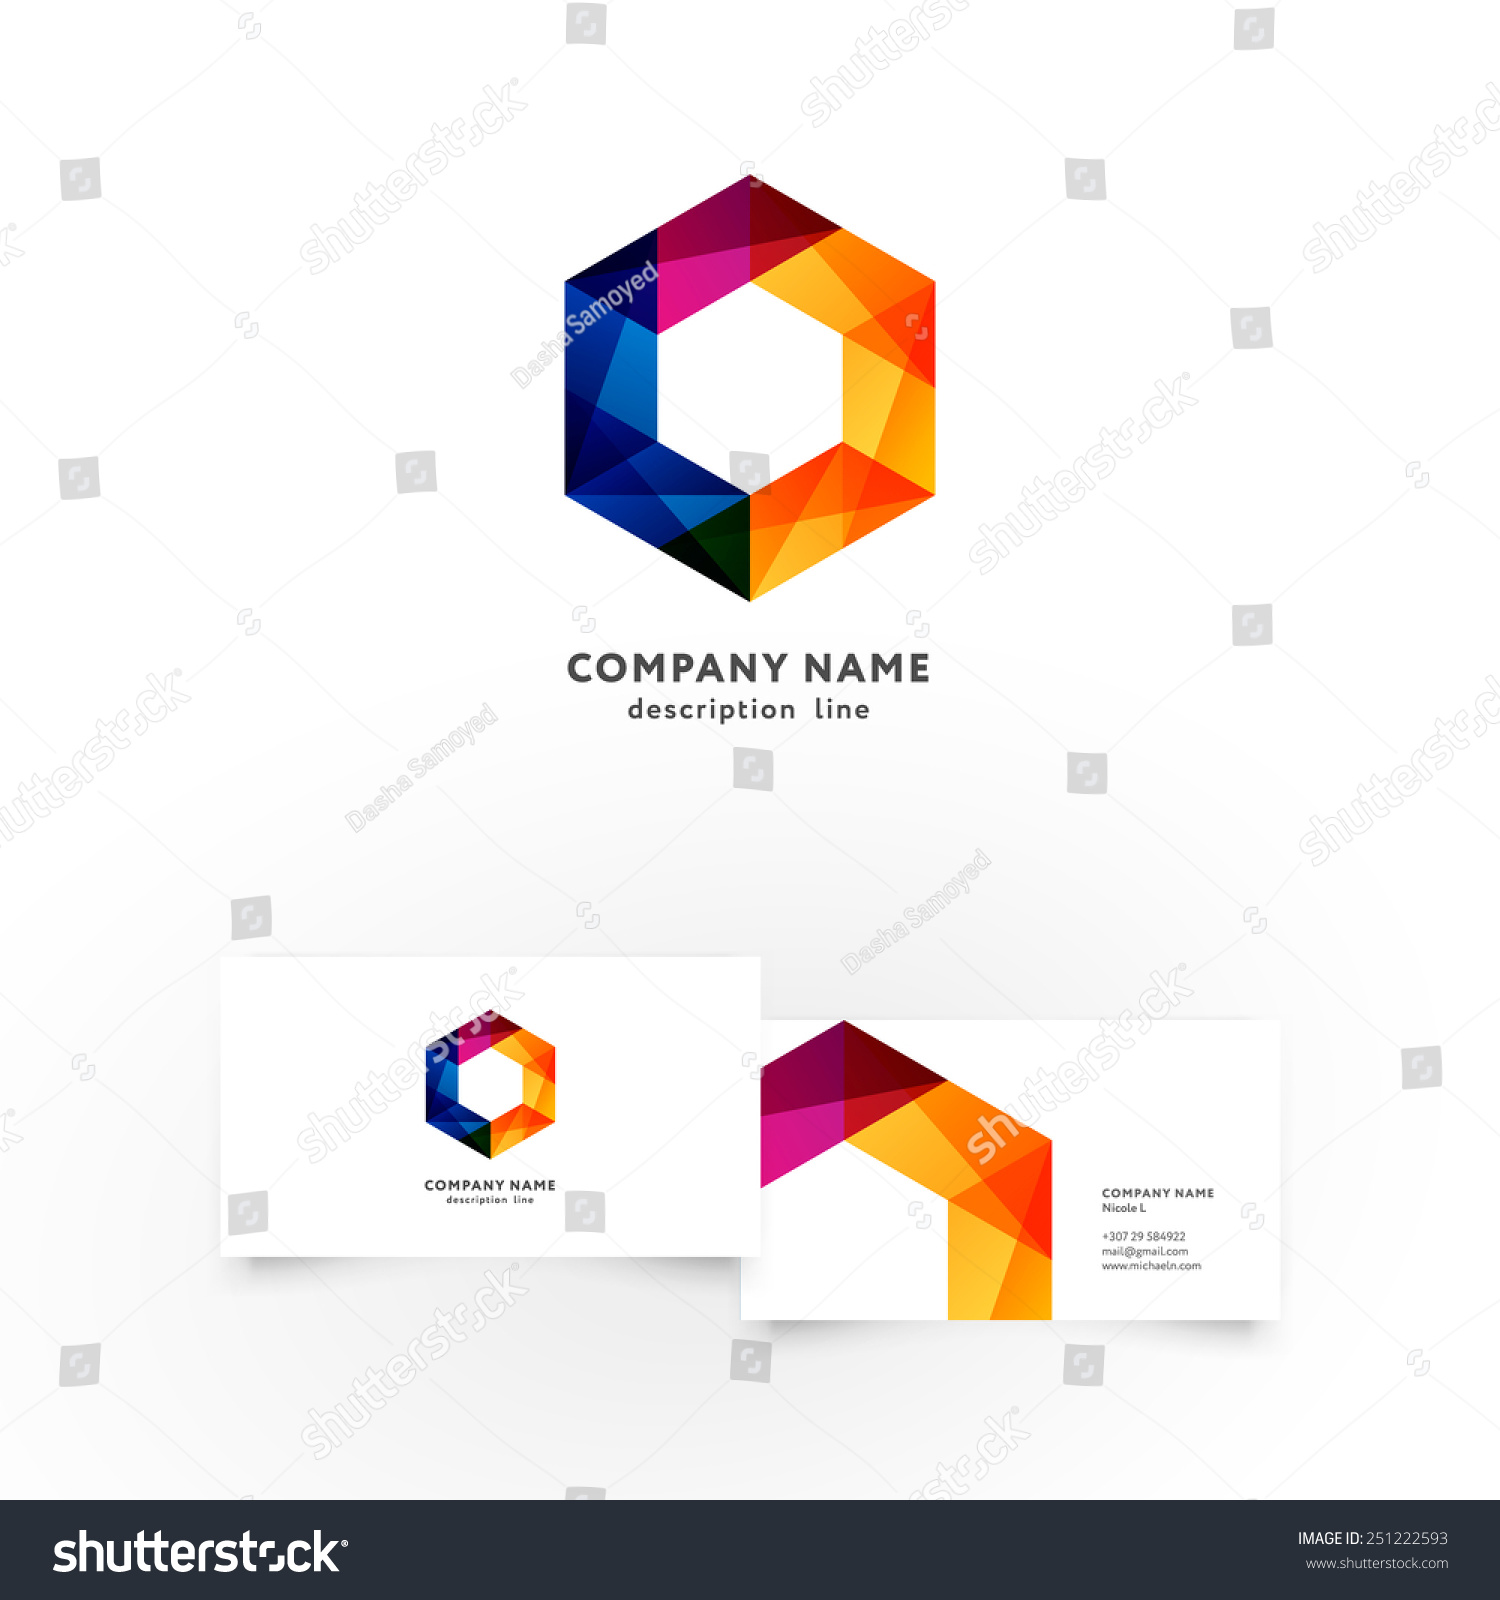 Modern Icon Design Hexagon Shape Element Stock Vector 251222593 ...